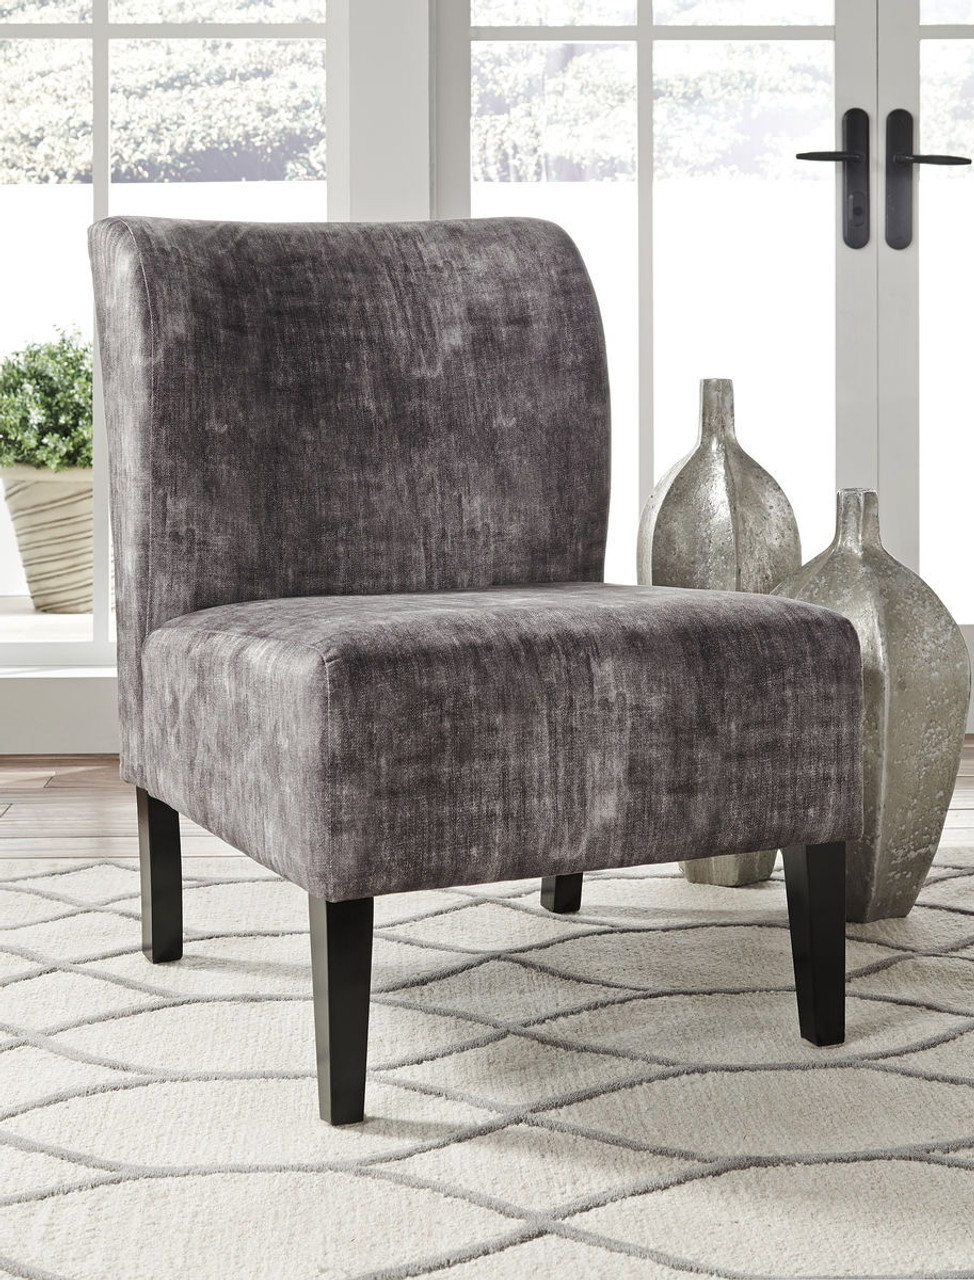 Groovy Triptis Charcoal Accent Chair Creativecarmelina Interior Chair Design Creativecarmelinacom